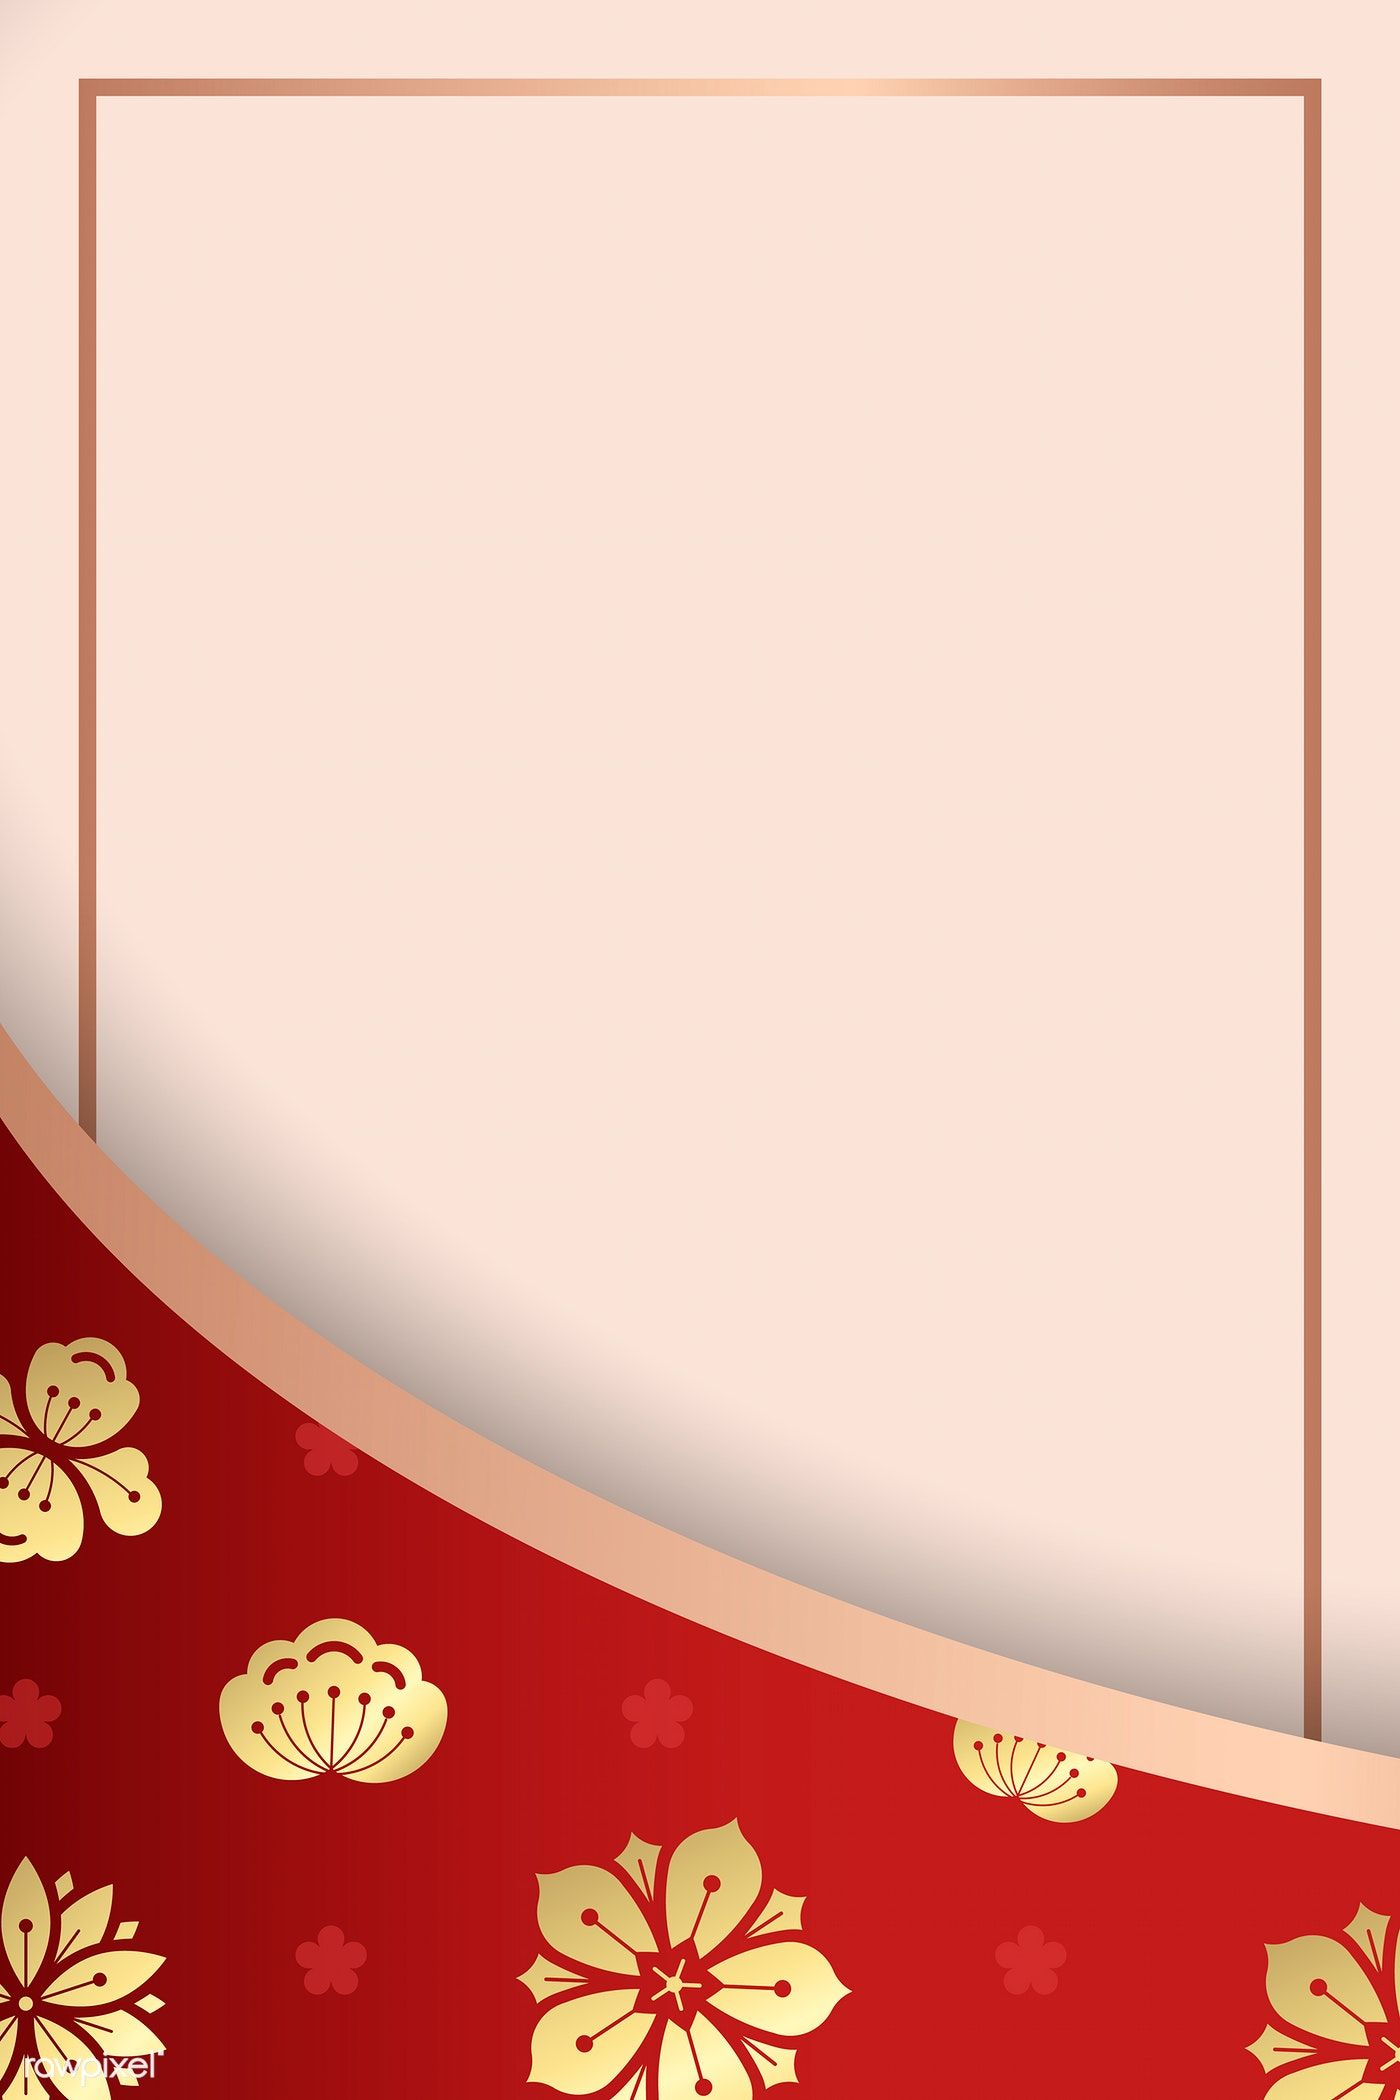 Download Premium Vector Of Happy Chinese New Year 2020 Background Vector In 2020 Happy Chinese New Year Chinese New Year 2020 Chinese New Year